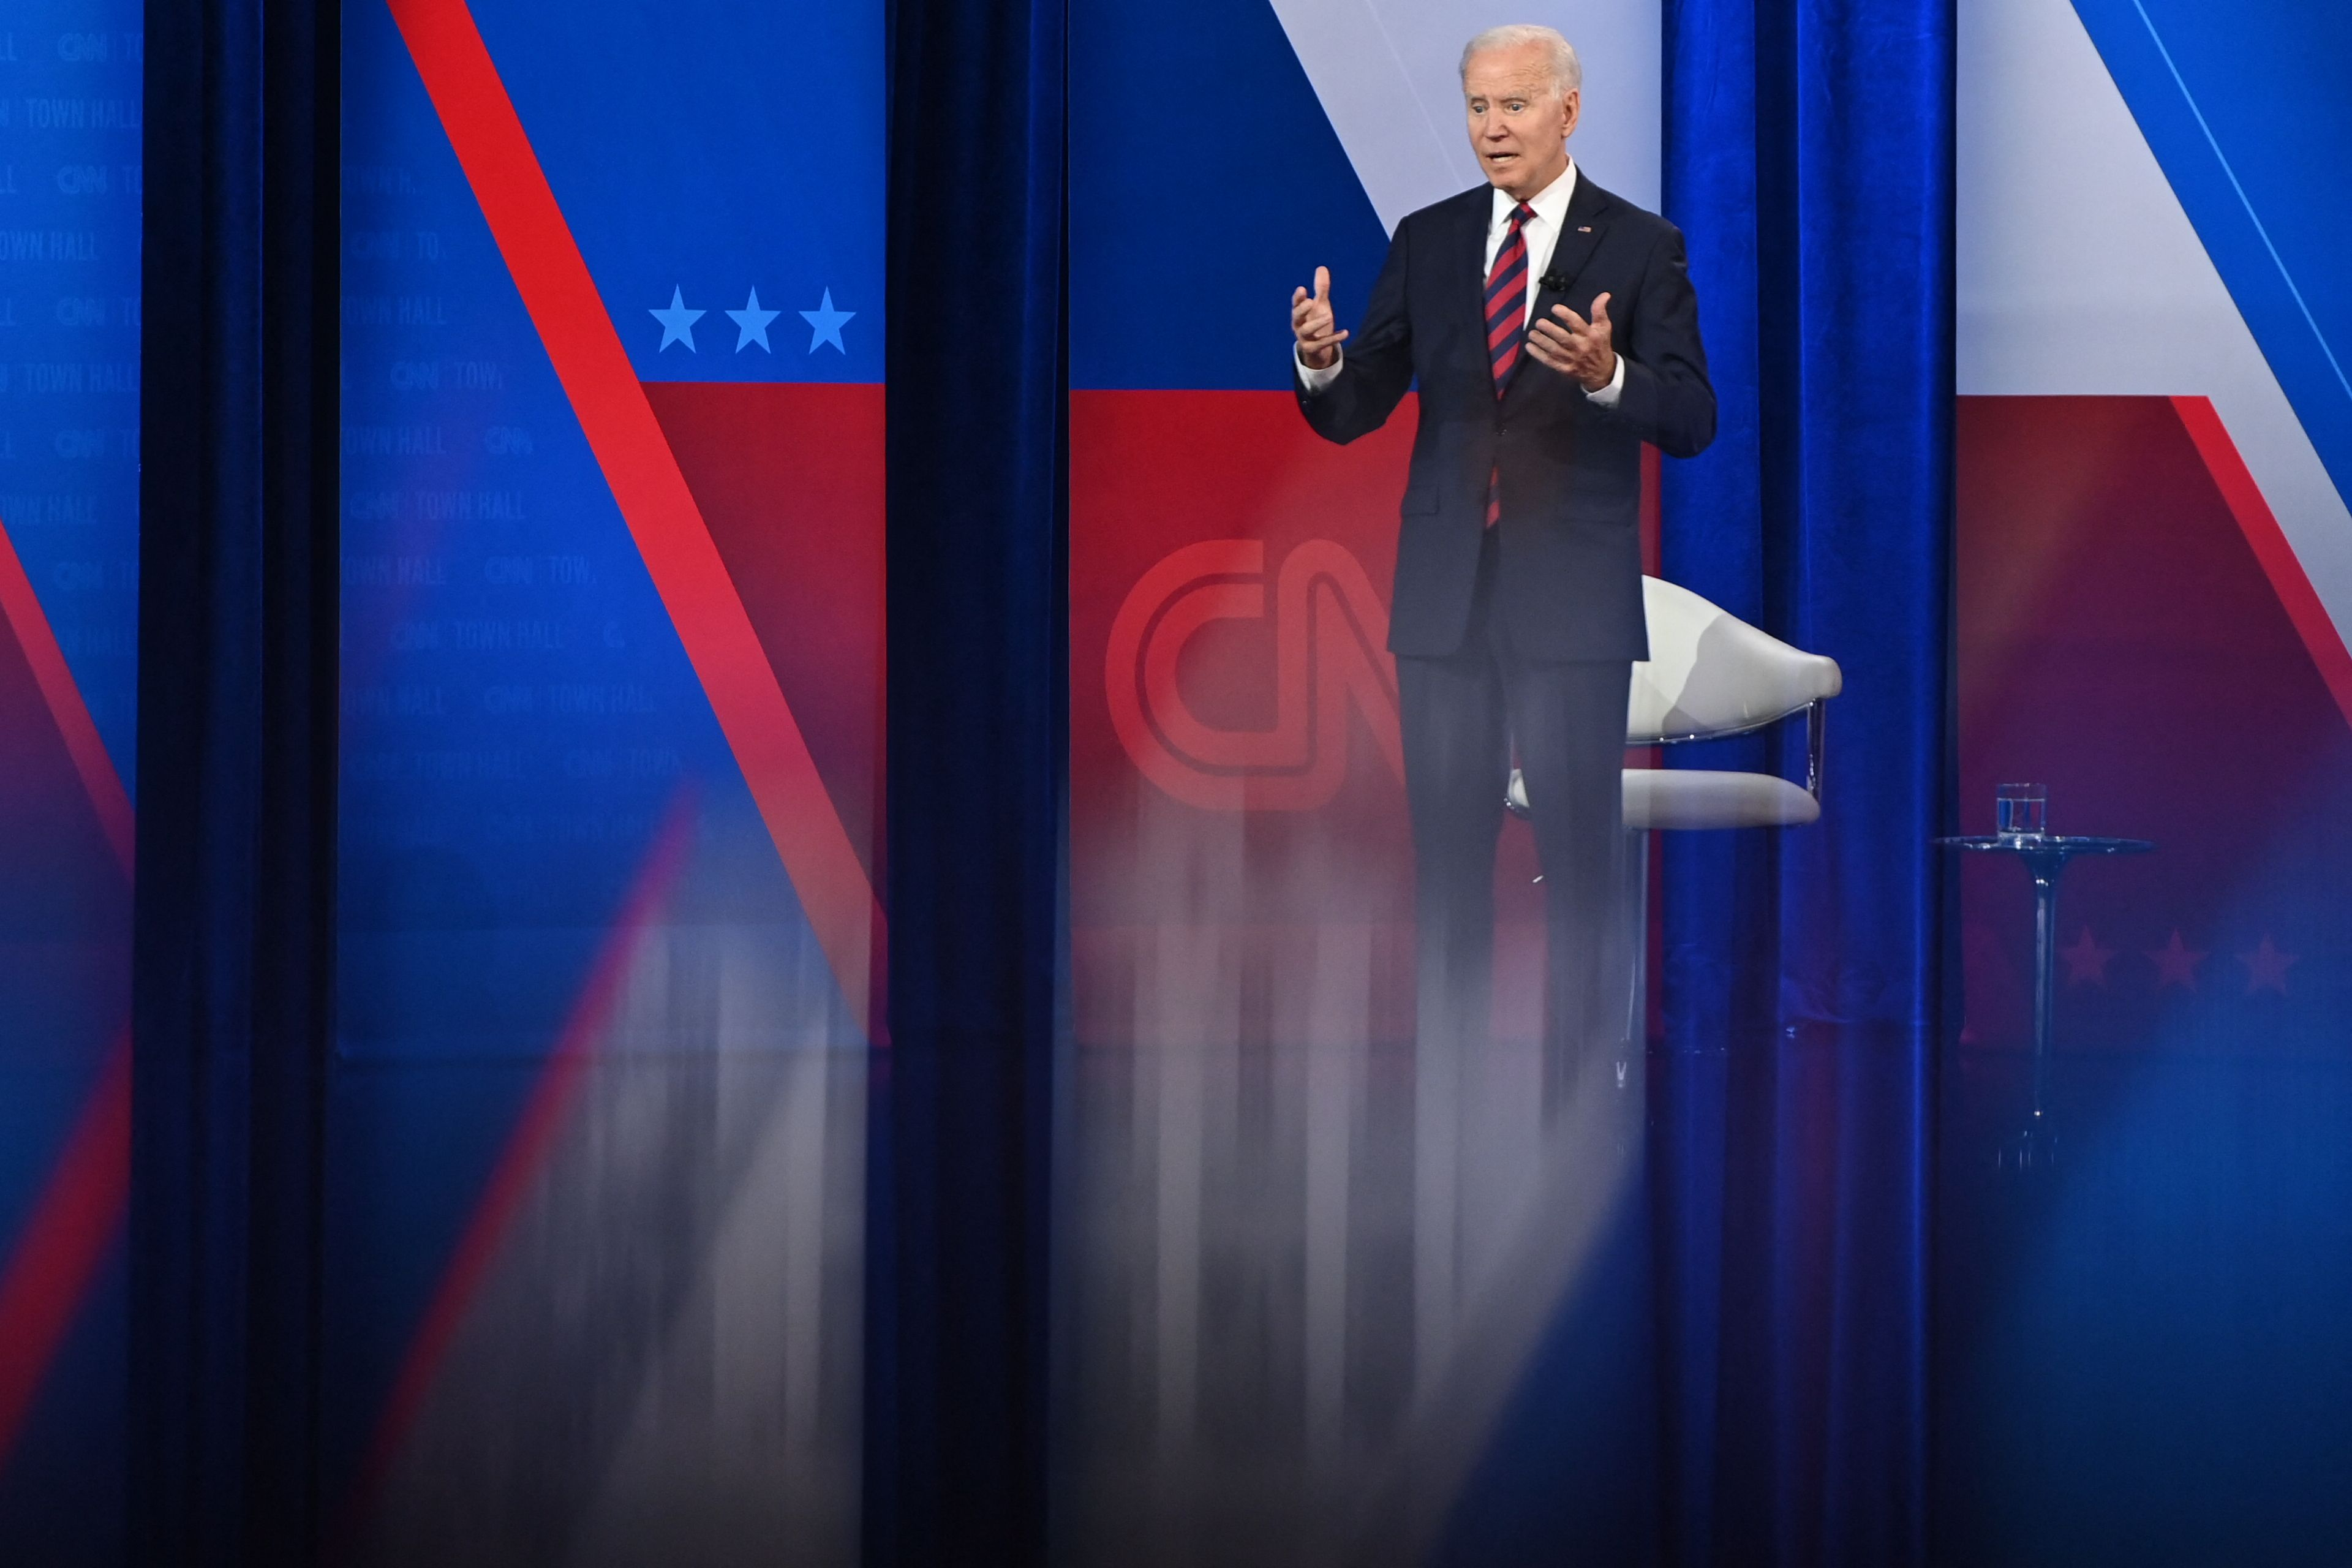 oe Biden participates in a CNN Town Hall hosted by Don Lemon at Mount St. Joseph University in Cincinnati, Ohio. (Photo by SAUL LOEB/AFP via Getty Images)